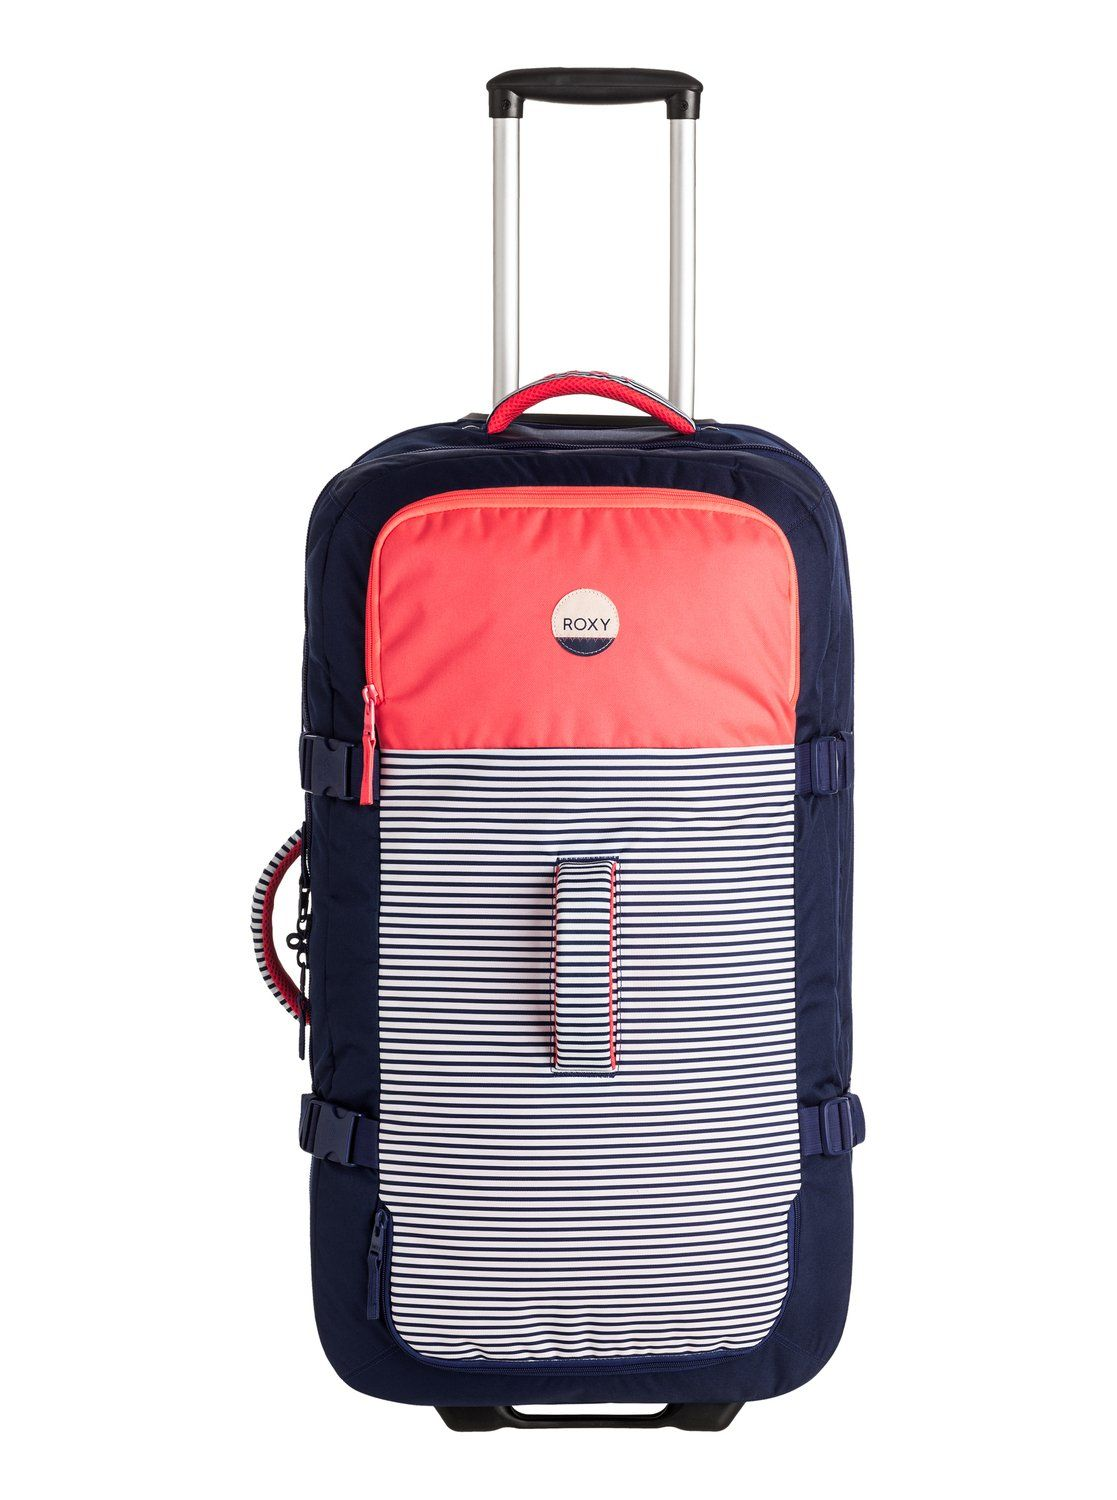 Fly Away Too Large Wheelie Suitcase 889351452665 In 2020 Bag Suitcase Suitcase Backpack Travel Bag